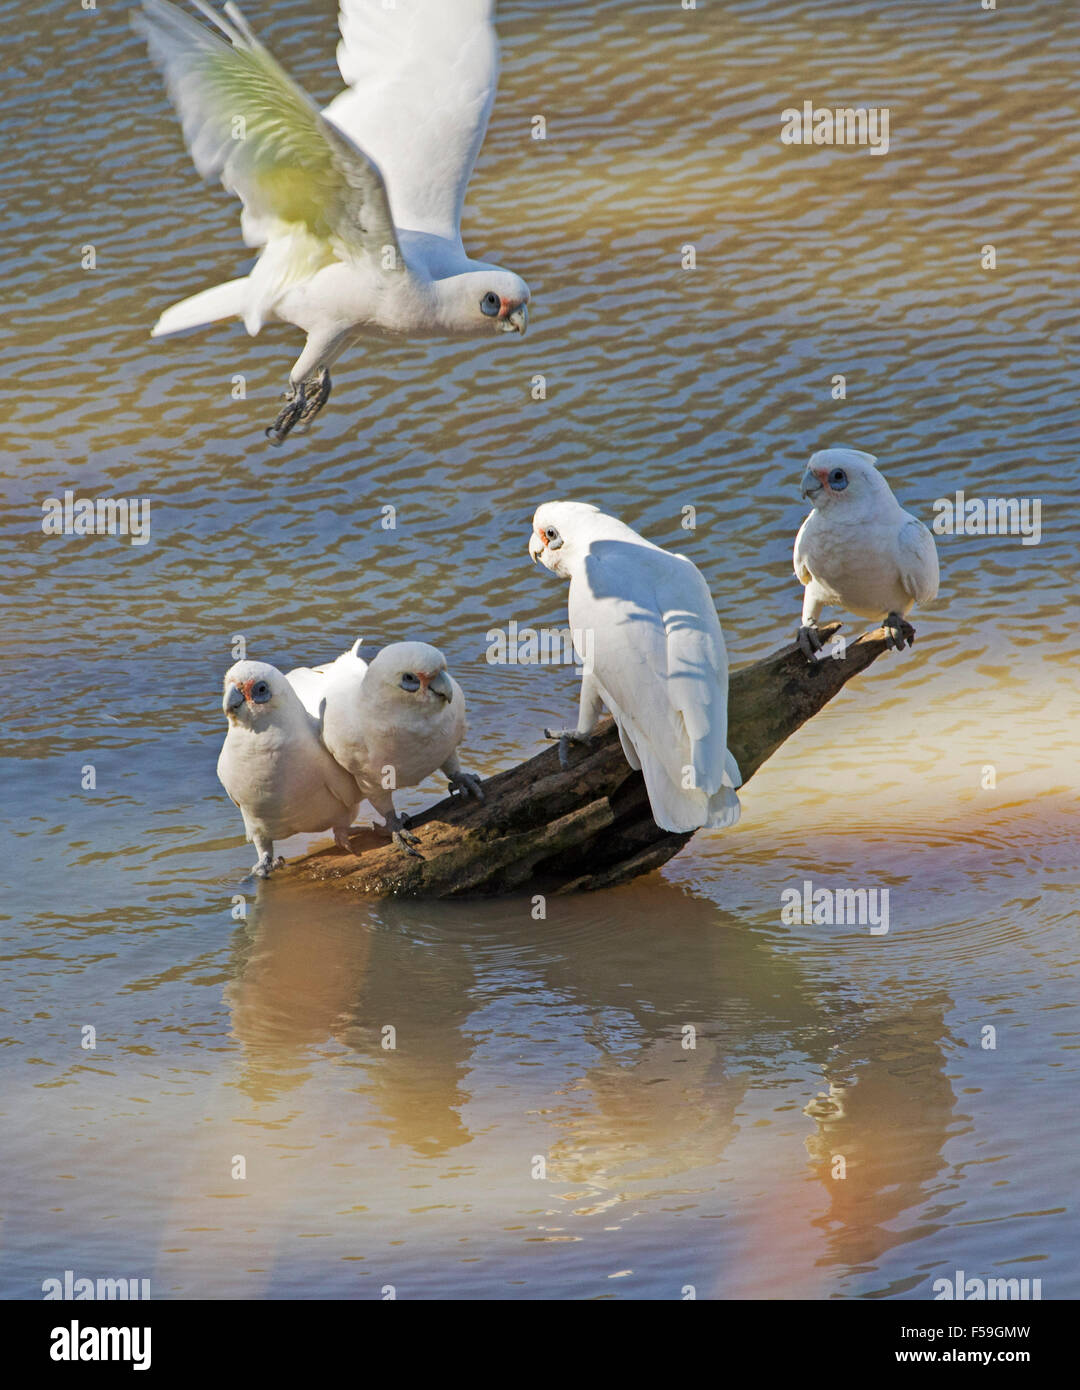 Group of little corellas, Cacatua sanguinea, white cockatoos flying above & standing on log in water of creek - Stock Image